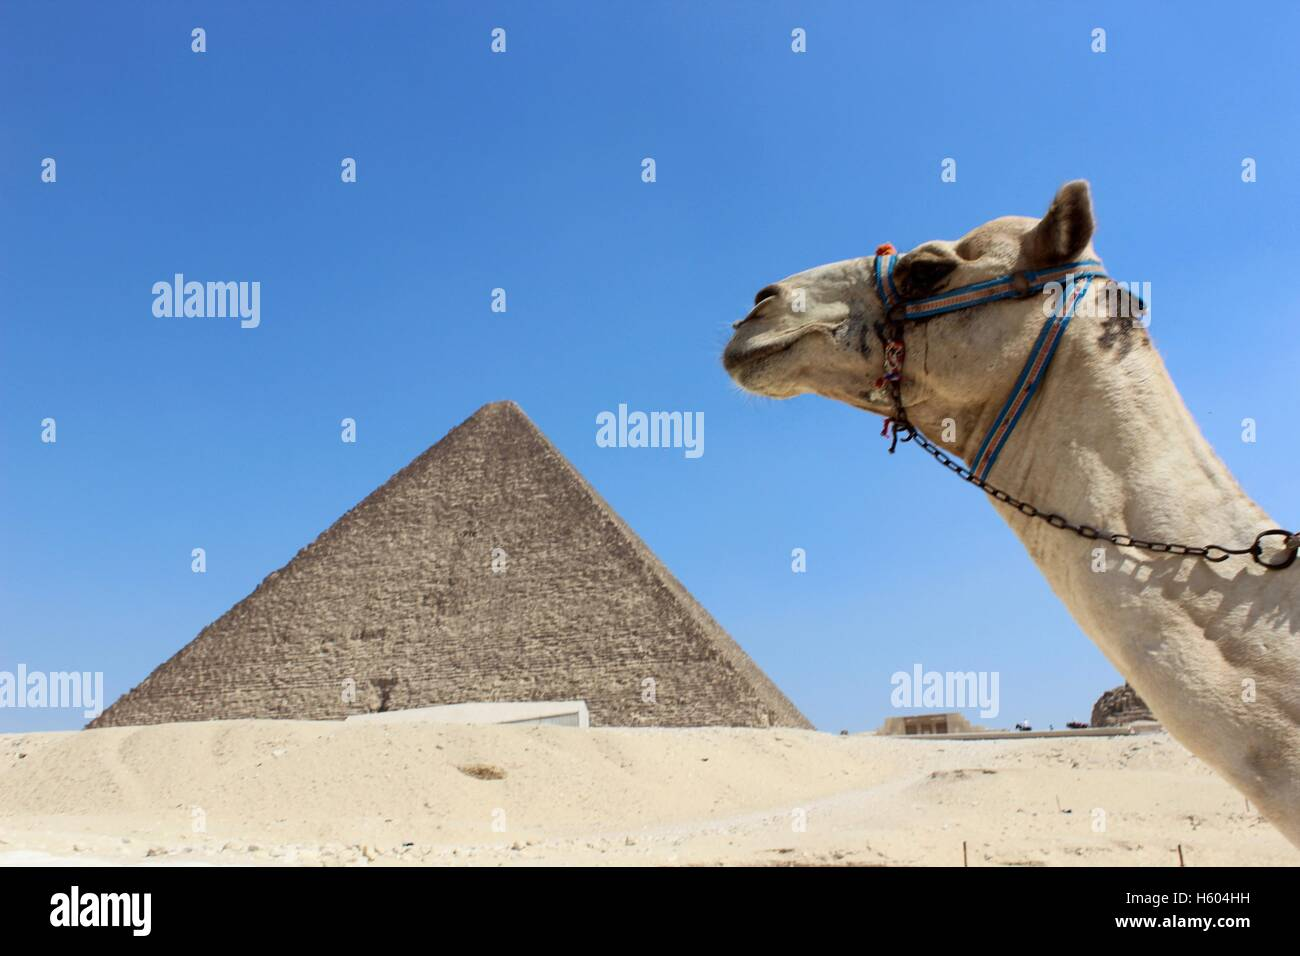 Camel At The Pyramids - Stock Image